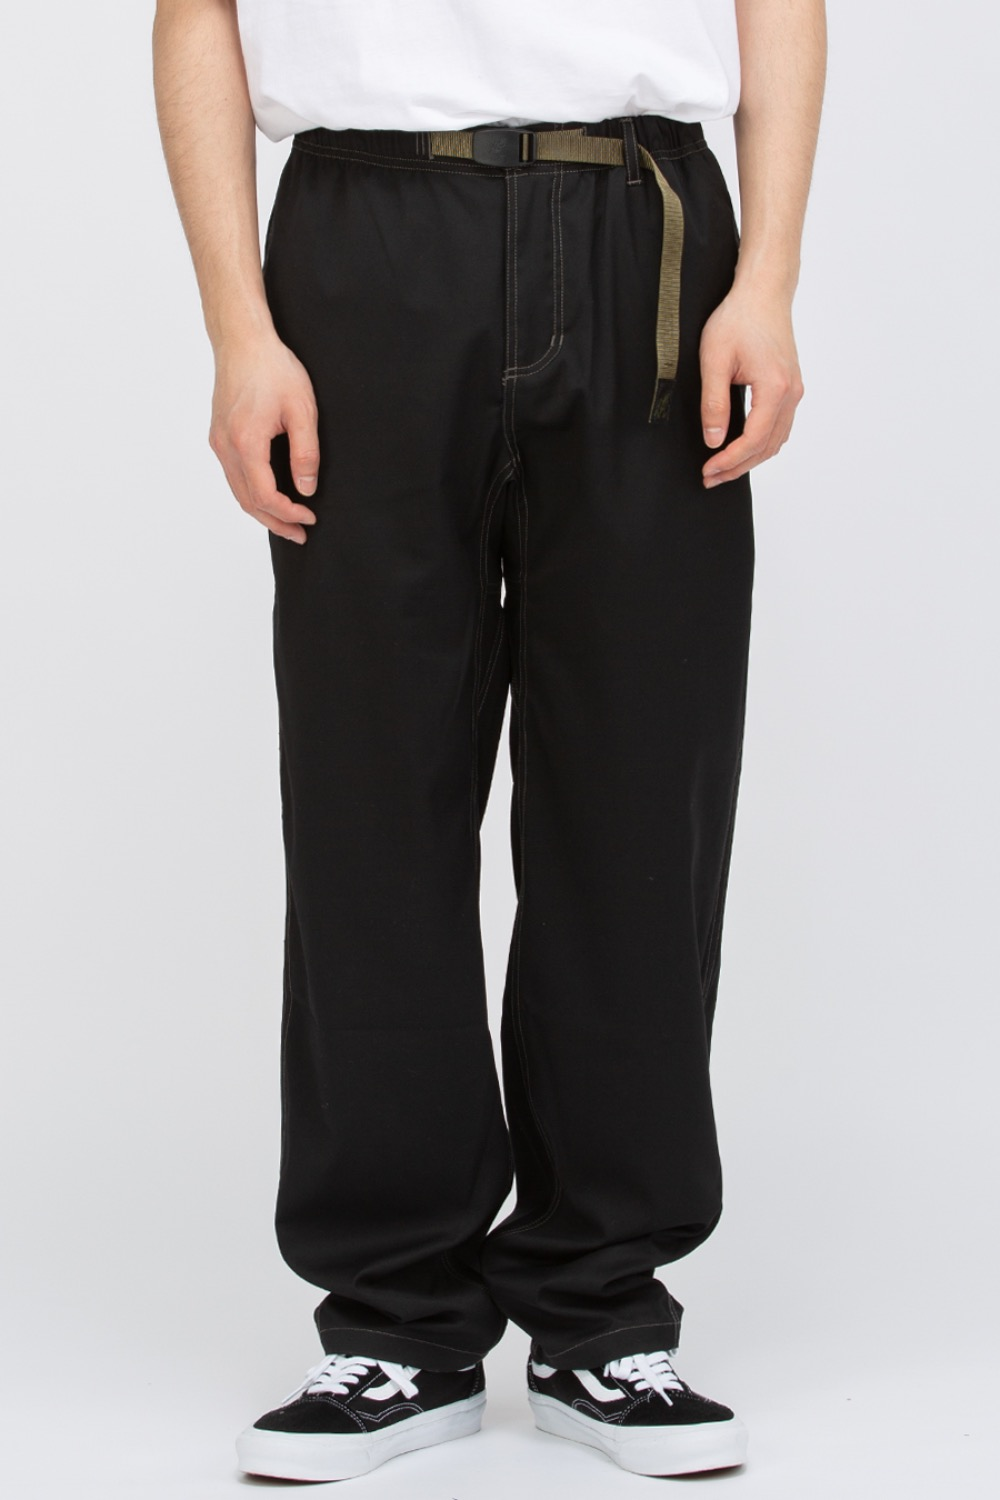 EASTLOGUE X GRAMICCI PANTS BLACK